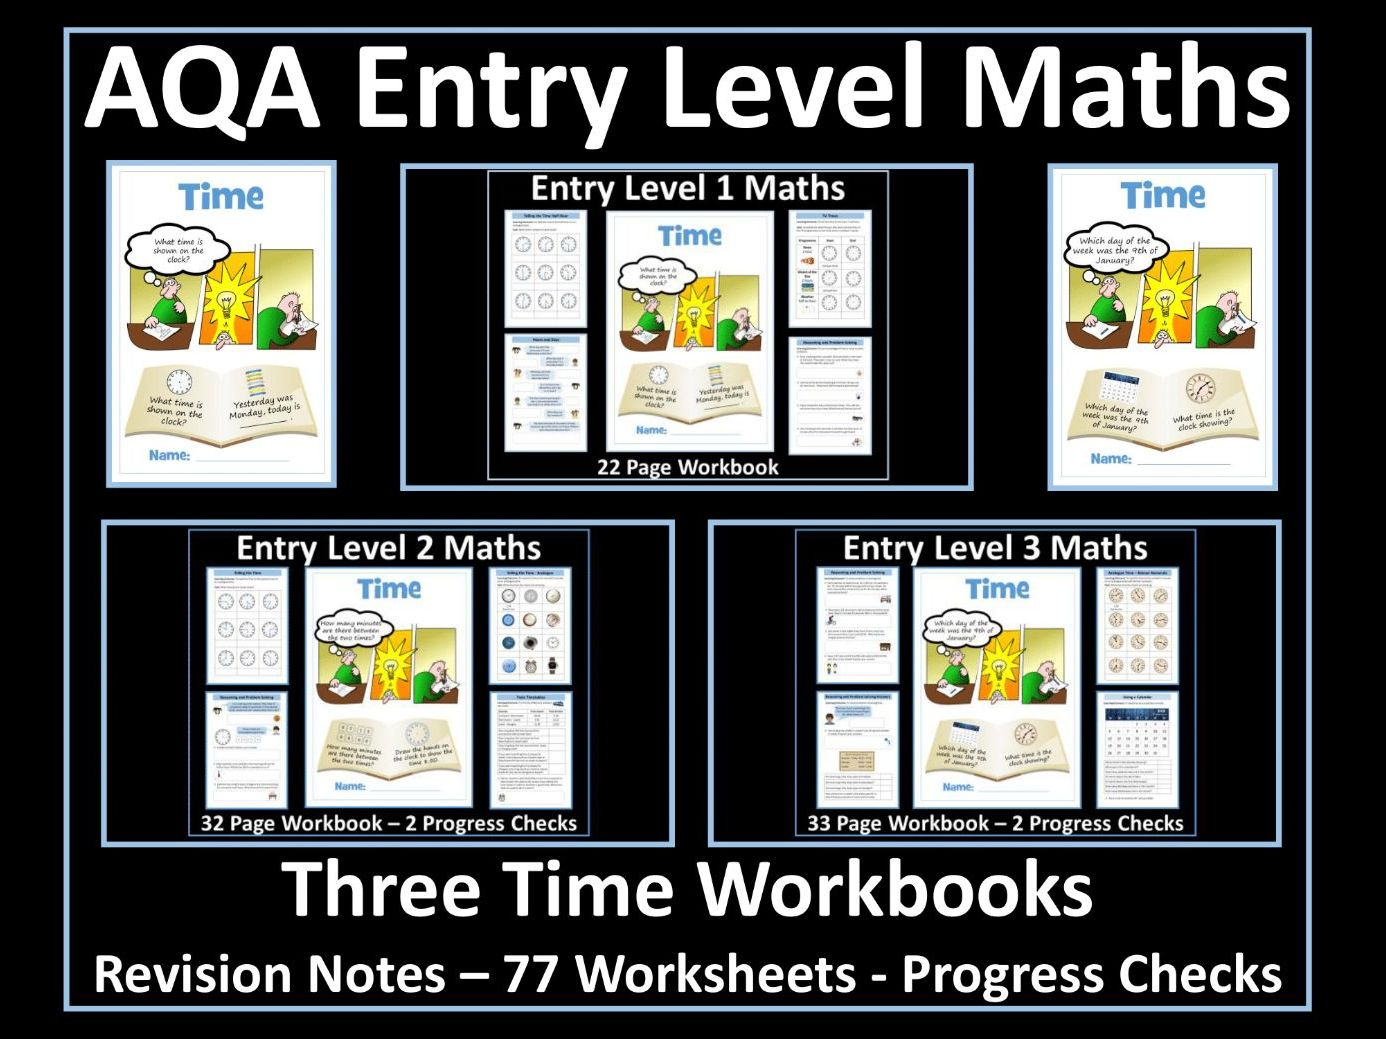 Time - AQA Entry Level Maths